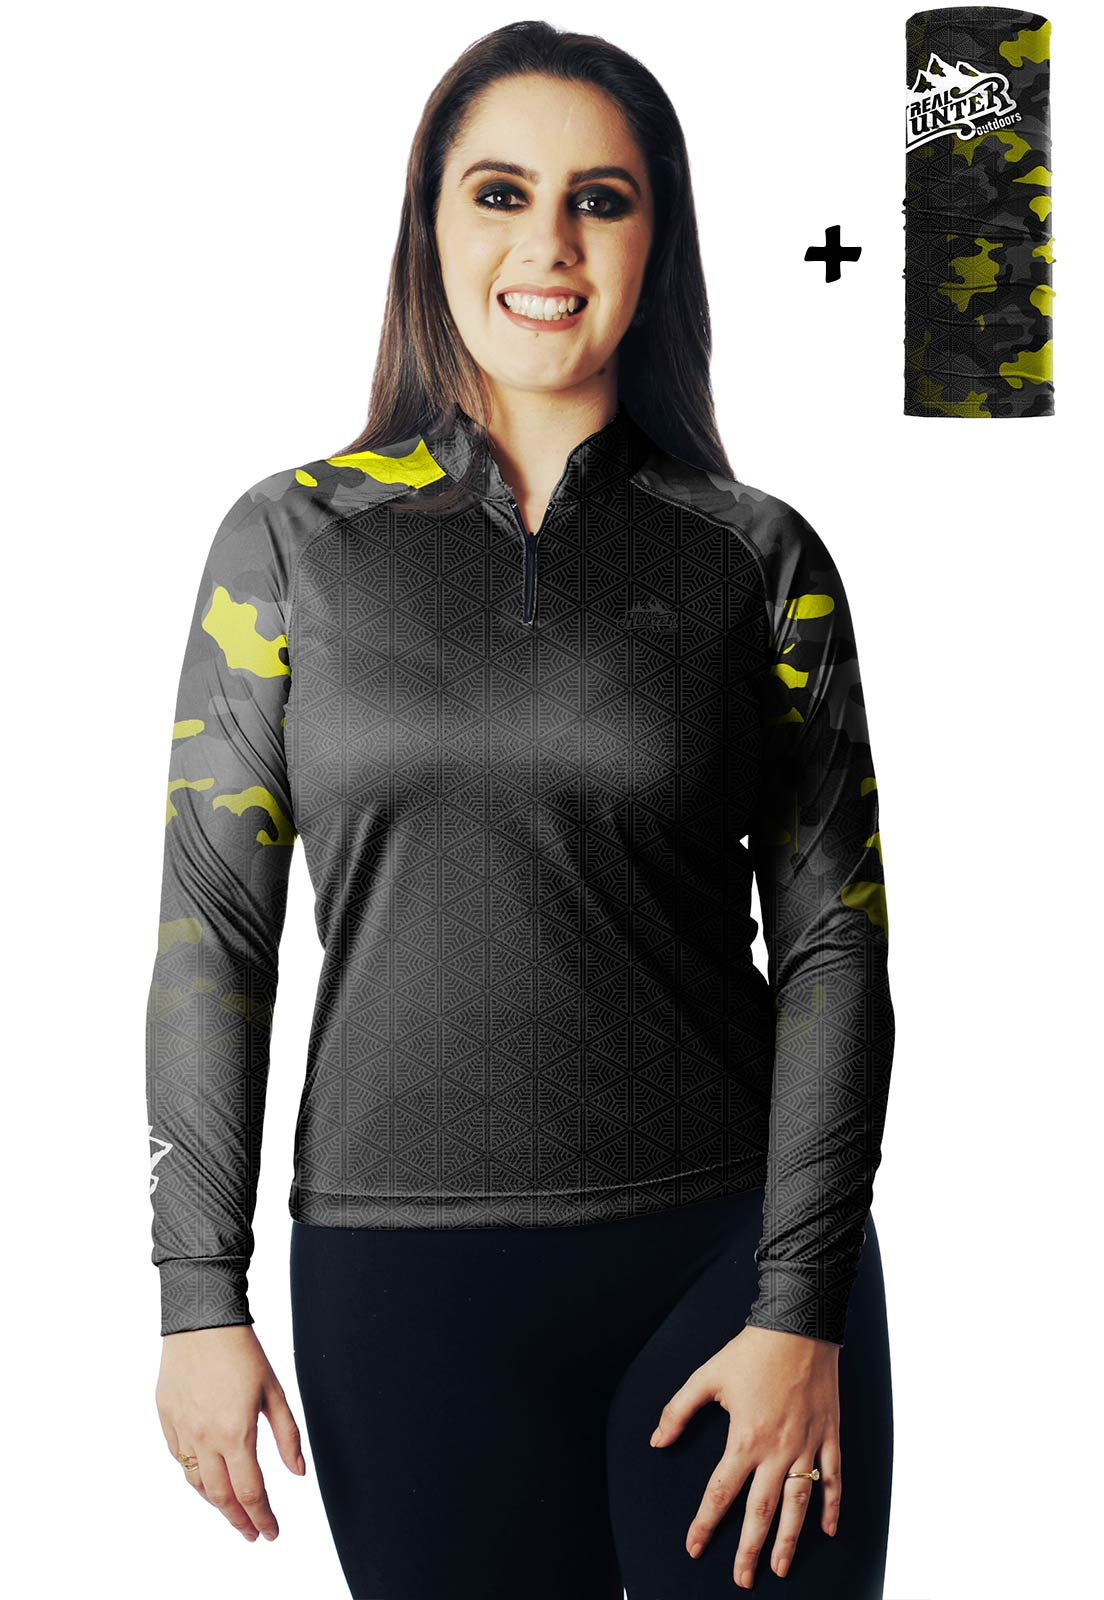 CAMISA DE PESCA FISH CAMUFLADA PRO 15 FEMININA + BANDANA GRÁTIS  - REAL HUNTER OUTDOORS